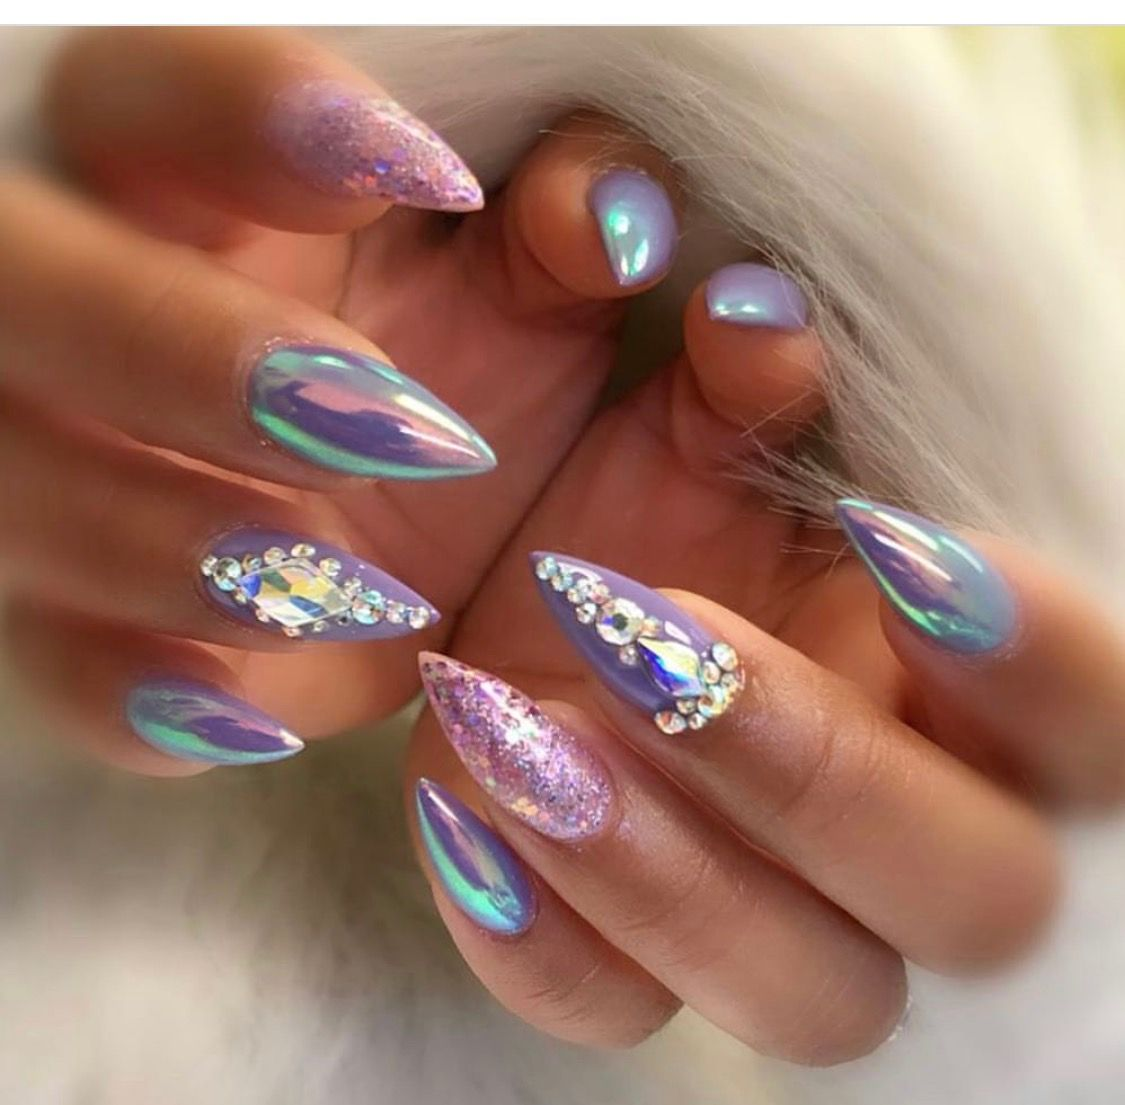 Pin by The Nail Box on Nails | Pinterest | All love, Nail design and ...